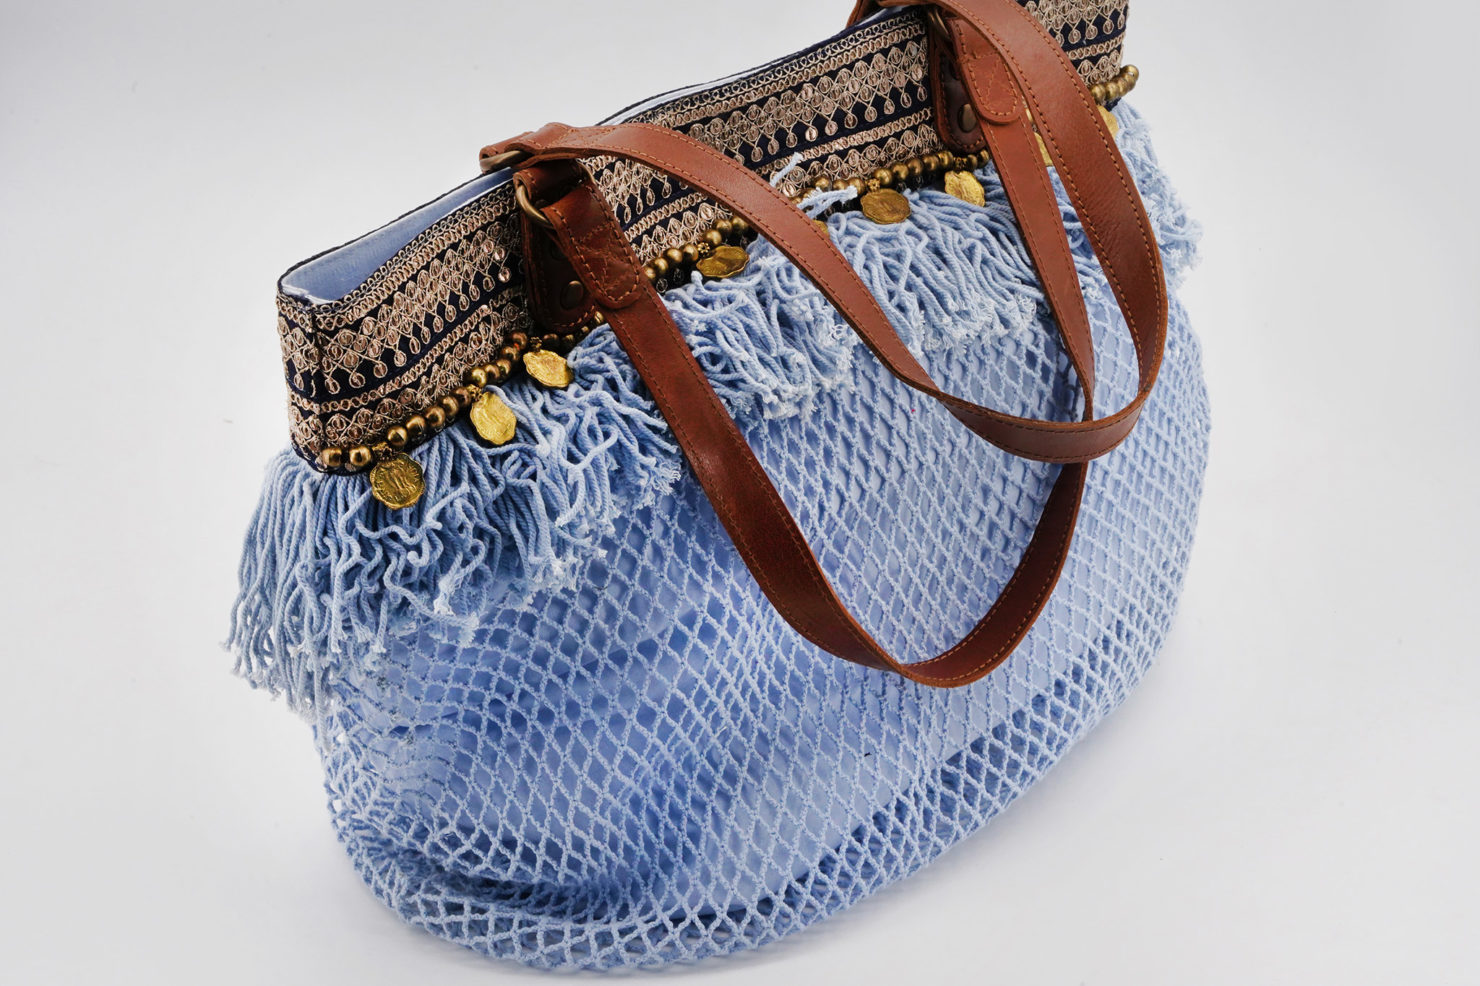 BAG NET, W/COINS LIGHT BLUE , LEATHER HANDLES - BY ROOM